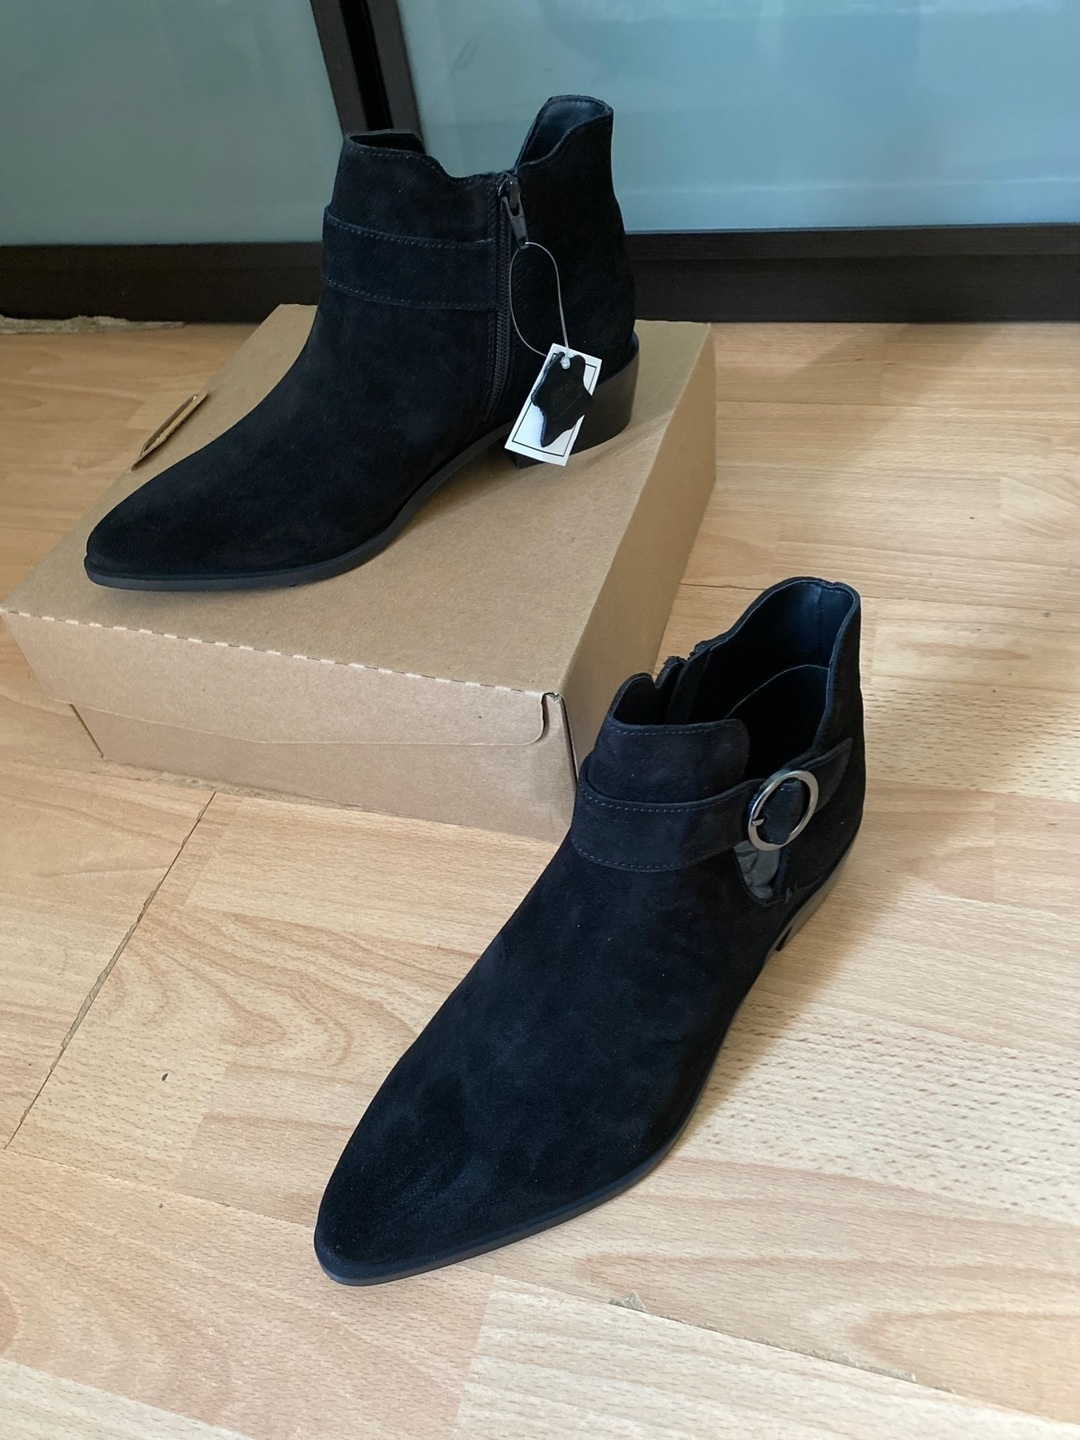 Women's boots - SIMPLY BE photo 3